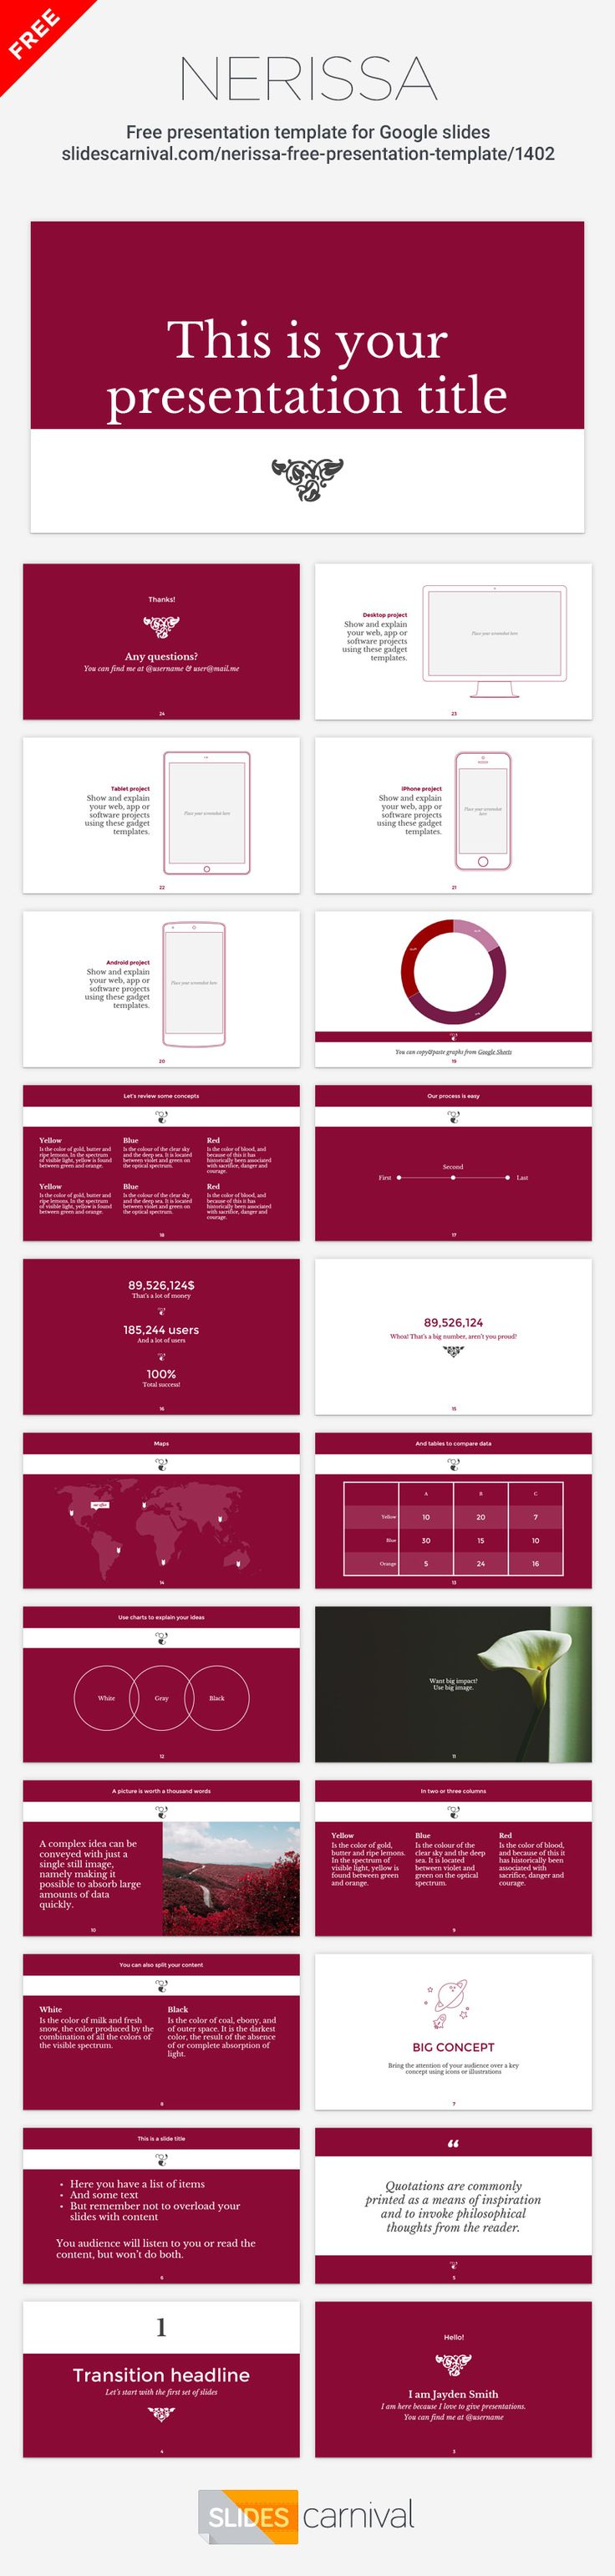 84 best free presentation templates images on pinterest nerissa is a classic and elegant free presentation template the serif typography the sober toneelgroepblik Choice Image